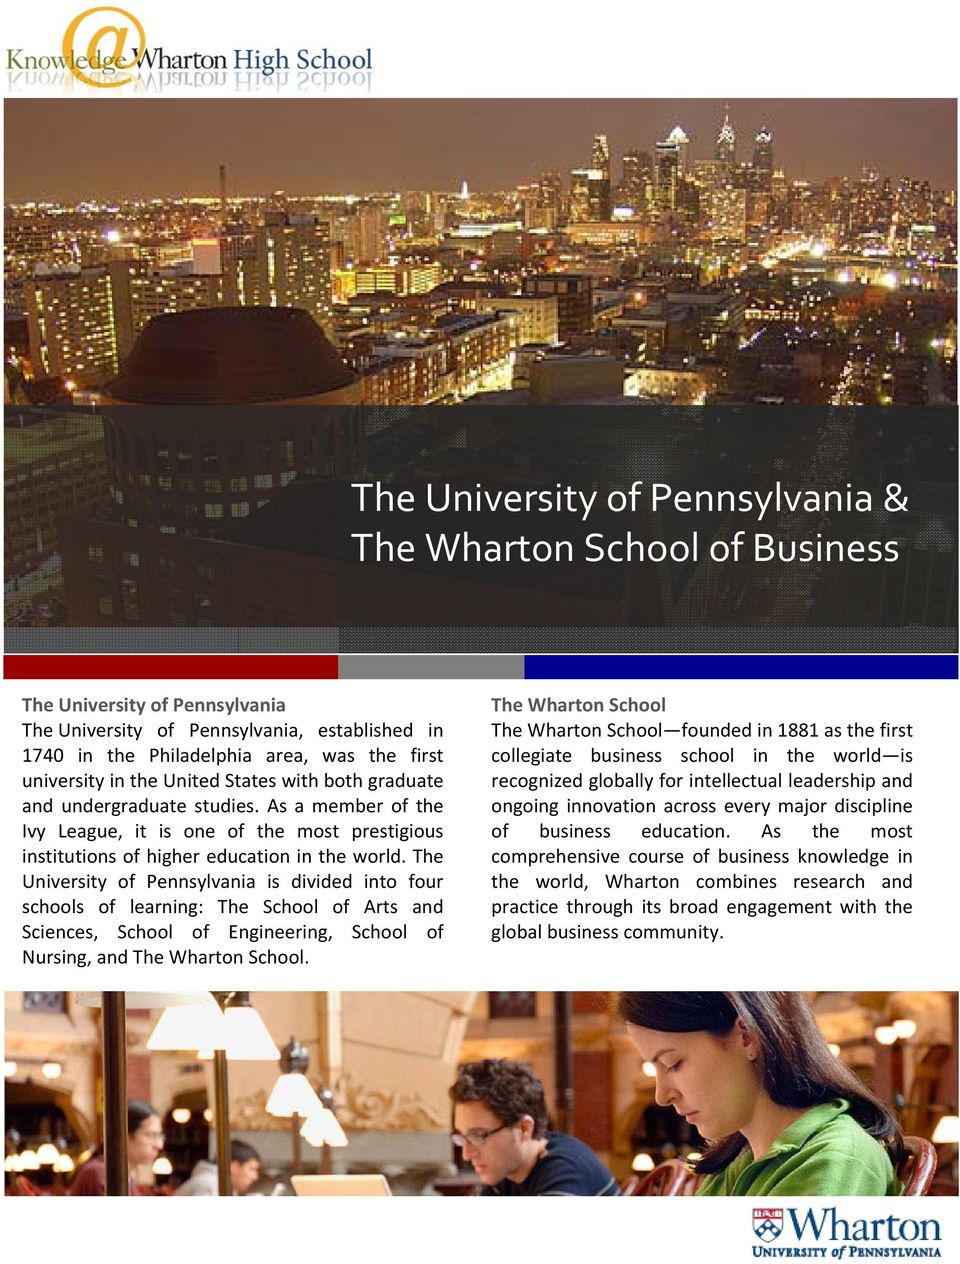 The University of Pennsylvania is divided into four schools of learning: The School of Arts and Sciences, School of Engineering, School of Nursing, and The Wharton School.